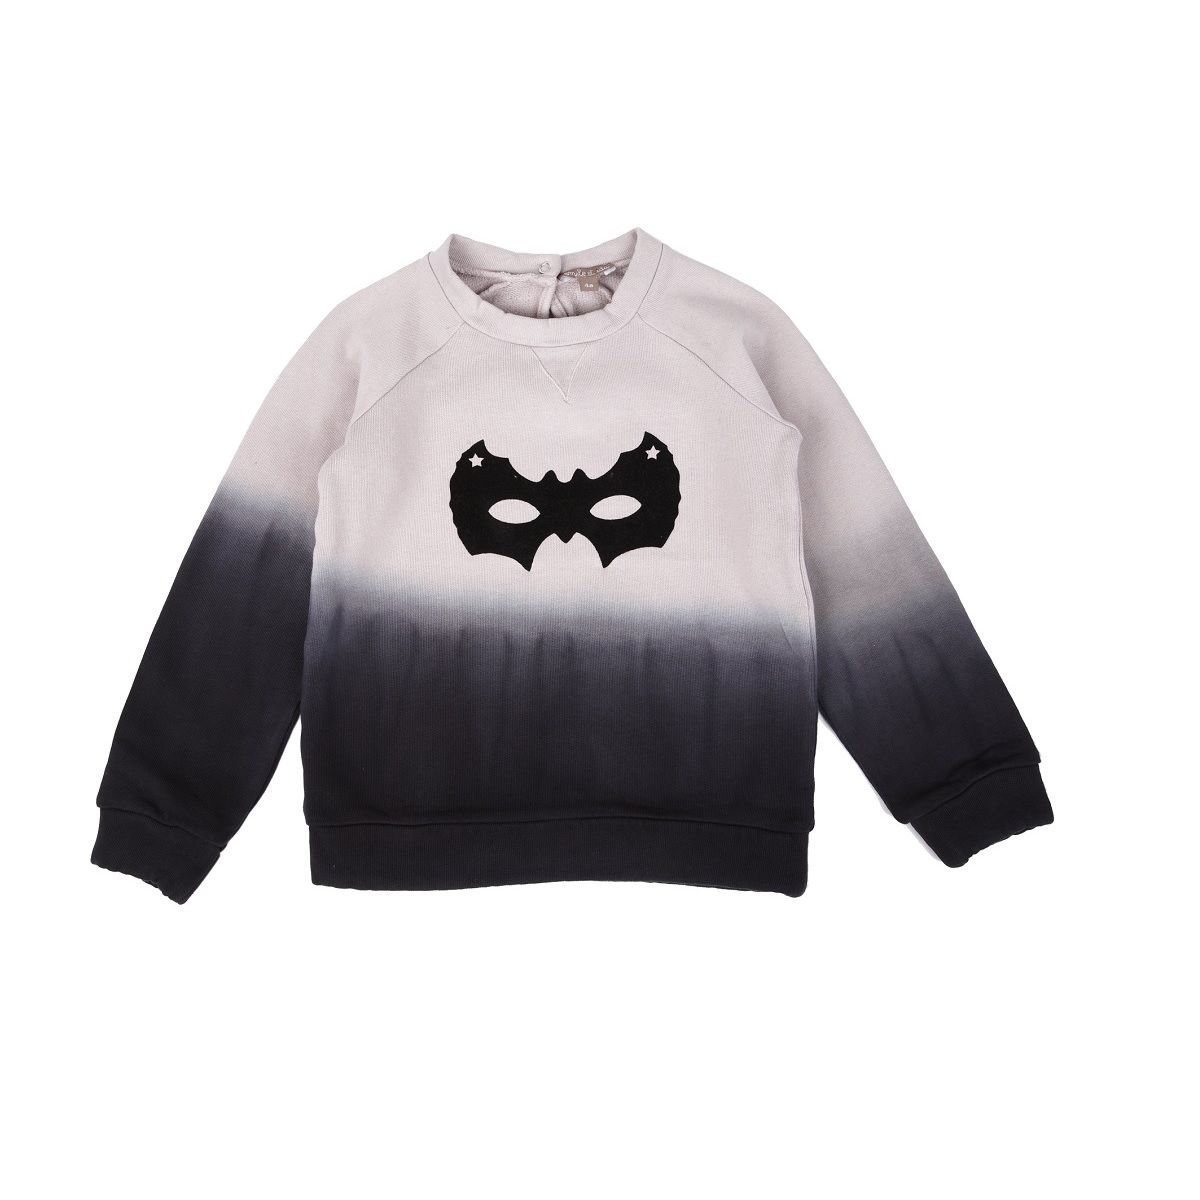 Emile et Ida Tie And Dye Mask Sweatshirt | SALE - Now 30% OFF | www.littlesahou.com